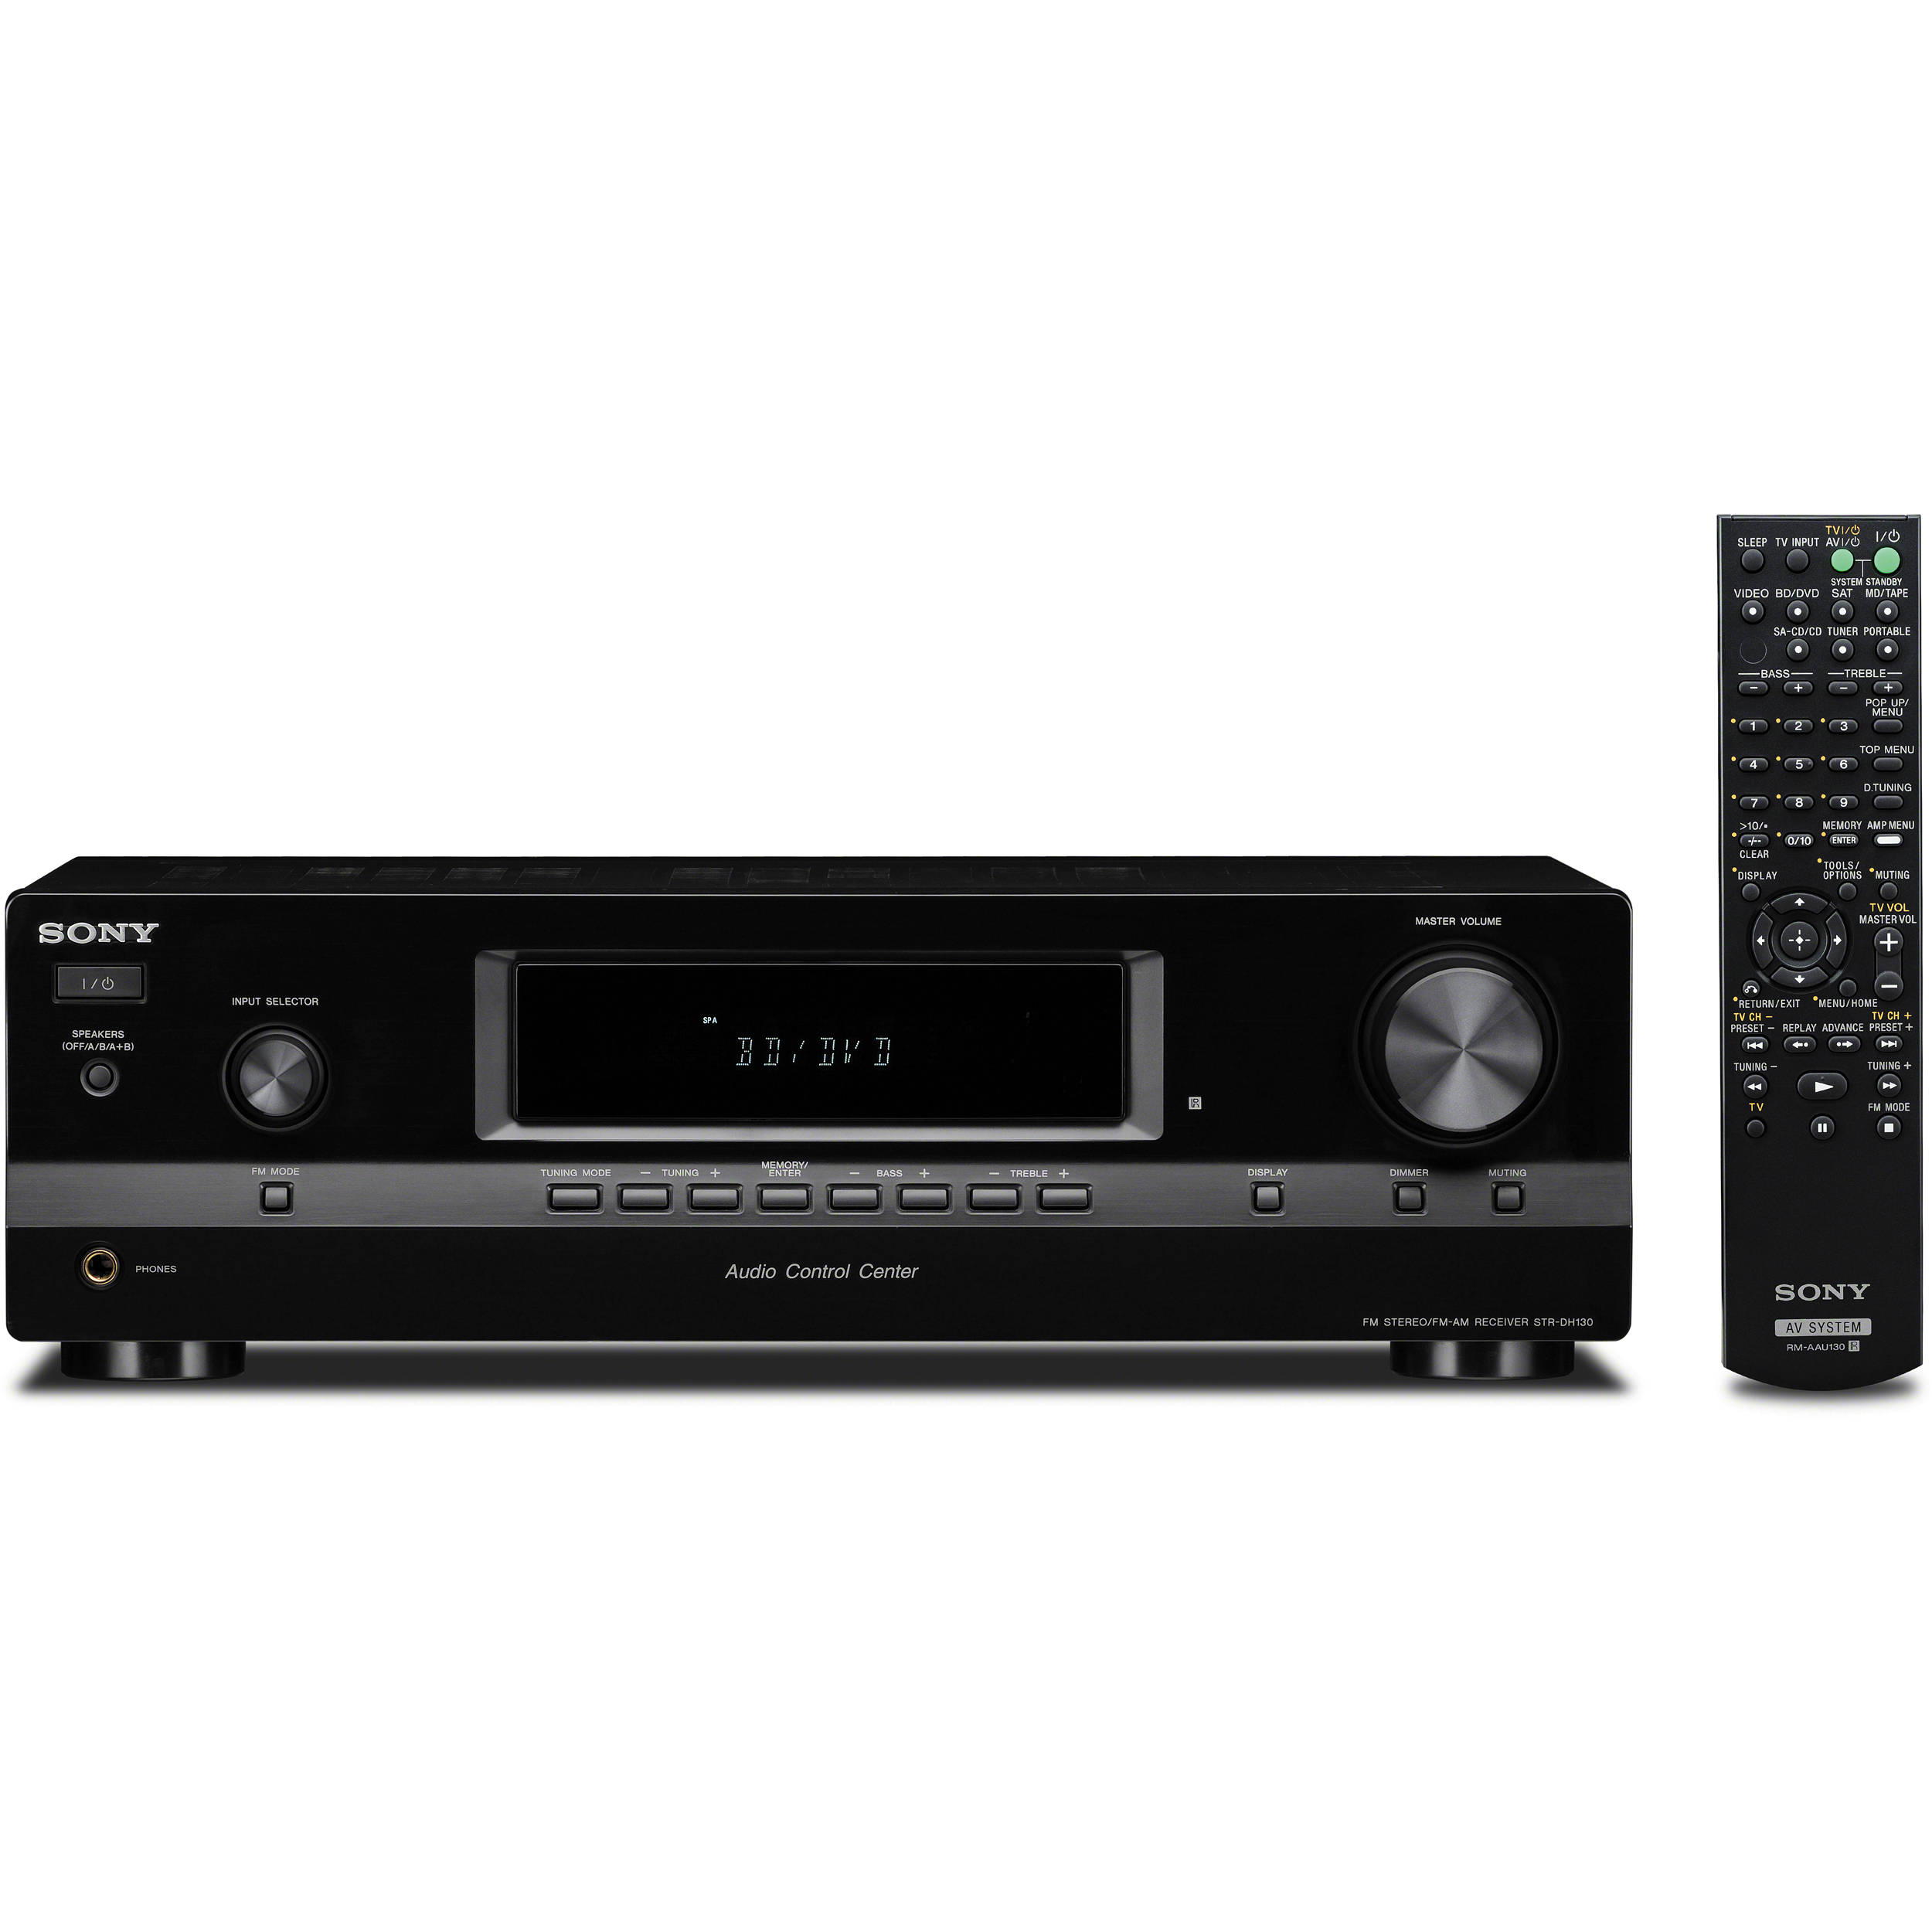 Sony STR-DH130 2-Channel Hi-Fi Receiver STR-DH130 B&H Photo